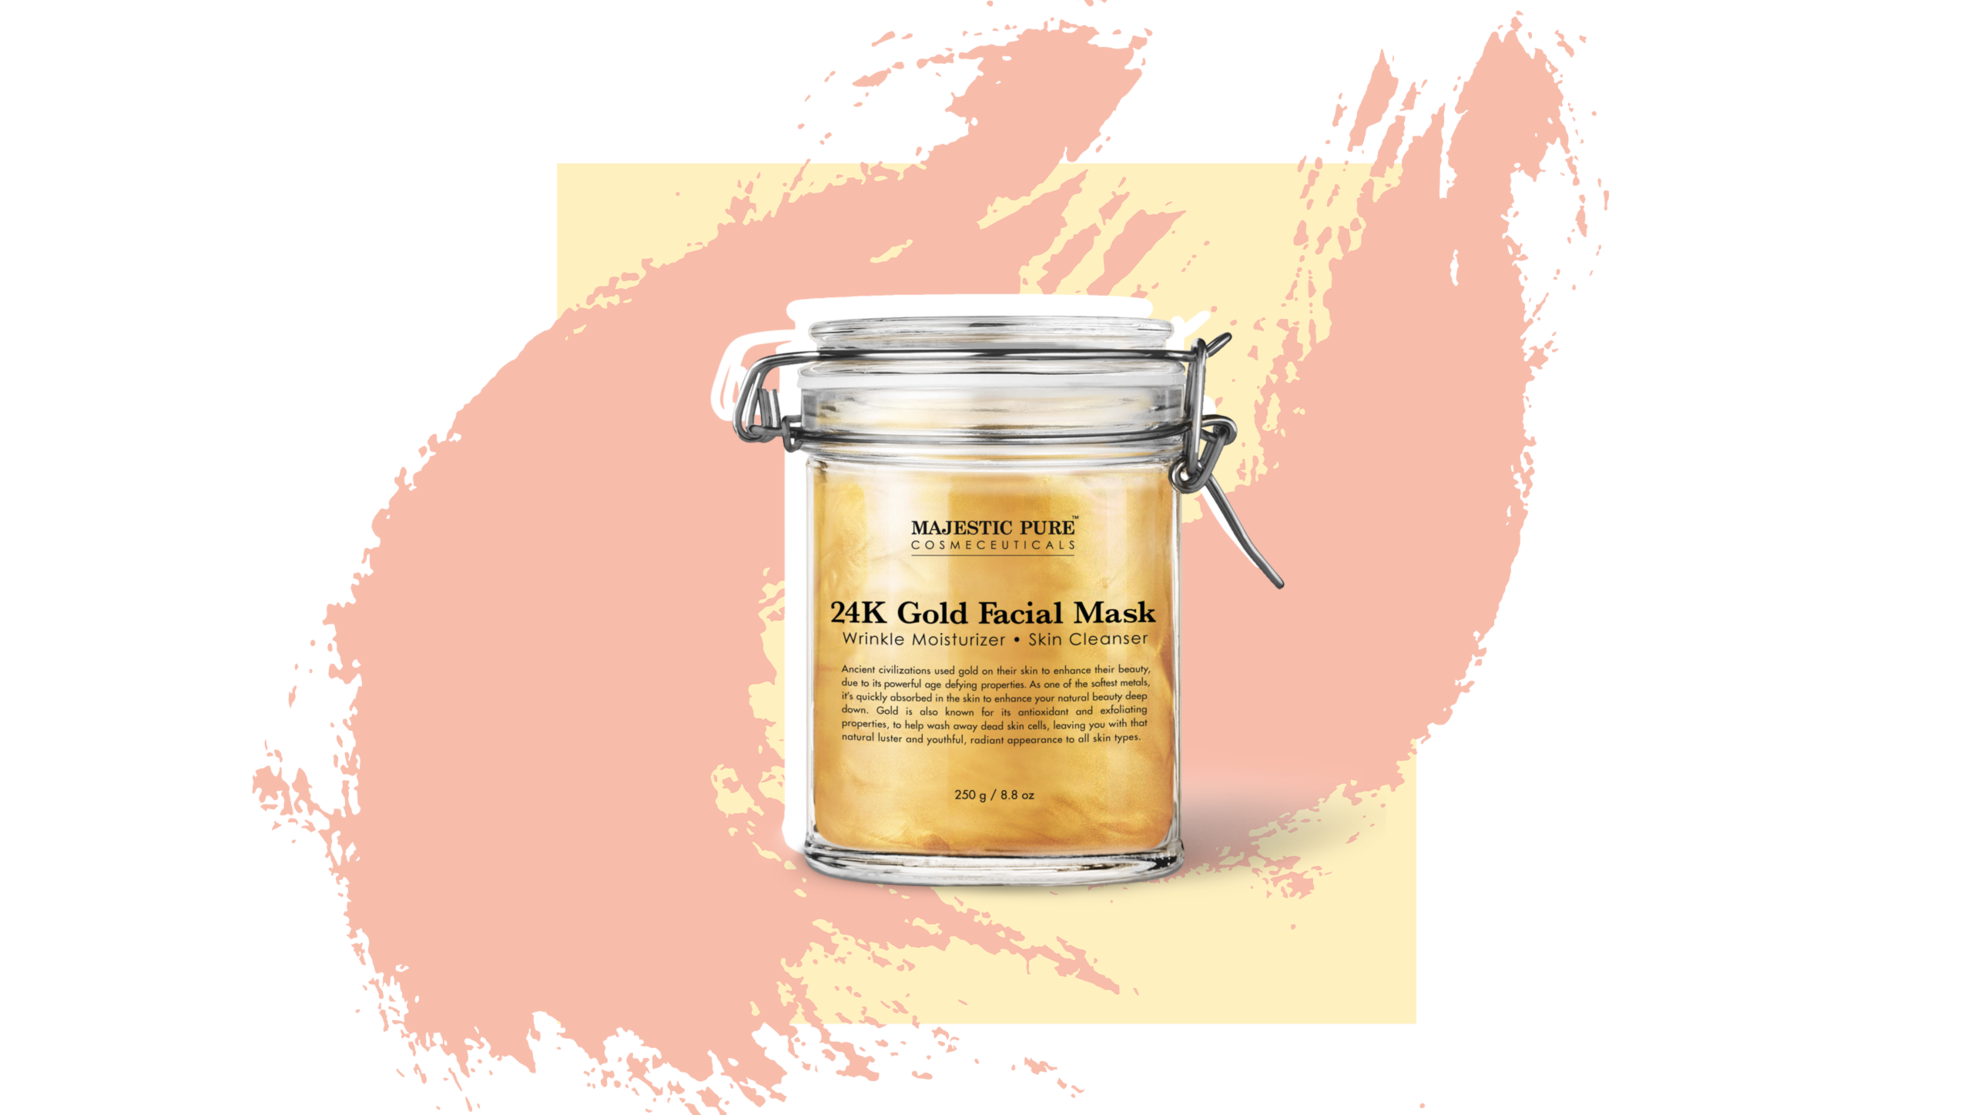 GOLD FACIAL MASK 24k moustirizing beauty product woman skin  Majestic Pure cosmeceuticals